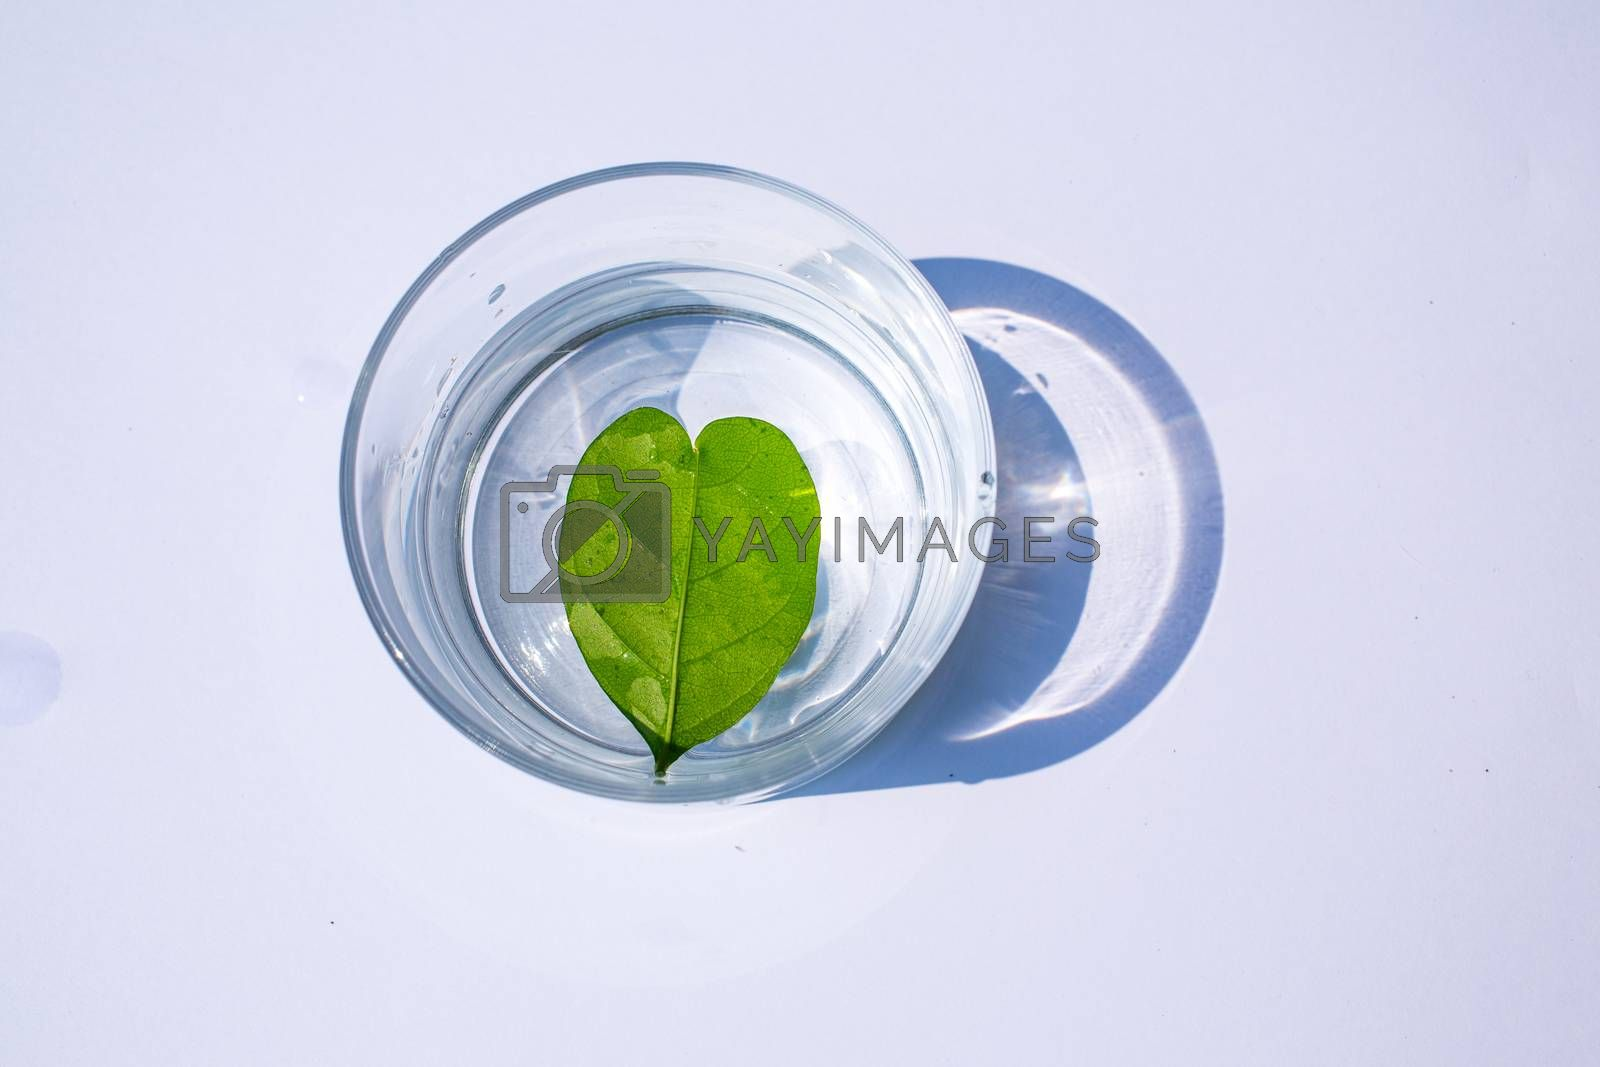 Heart leaf shape in glass of water  isolated on white background